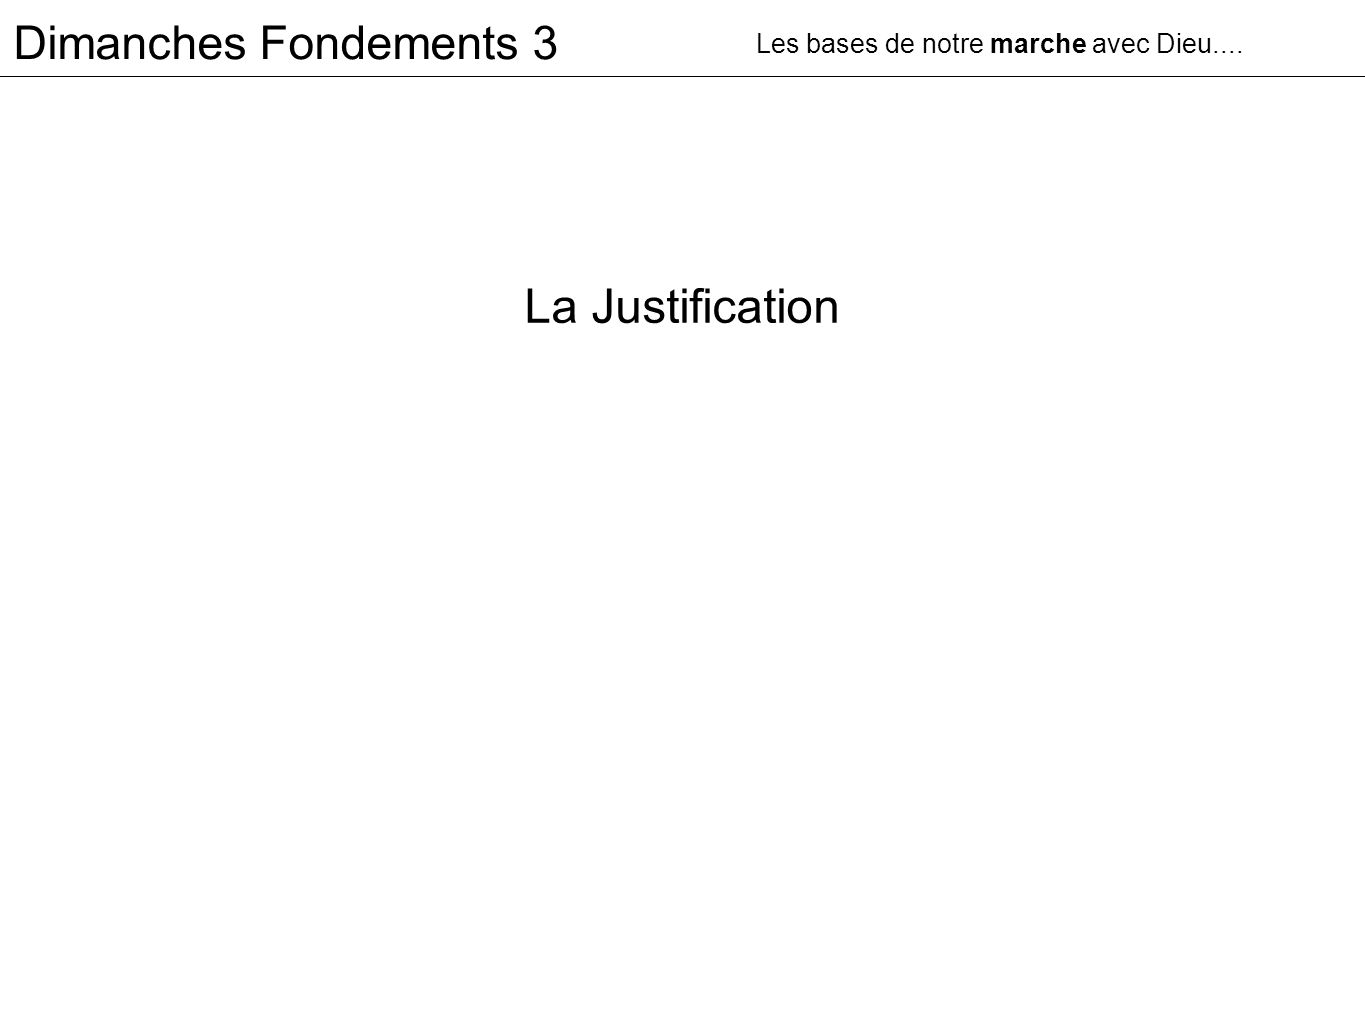 La Justification Dimanches Fondements 3